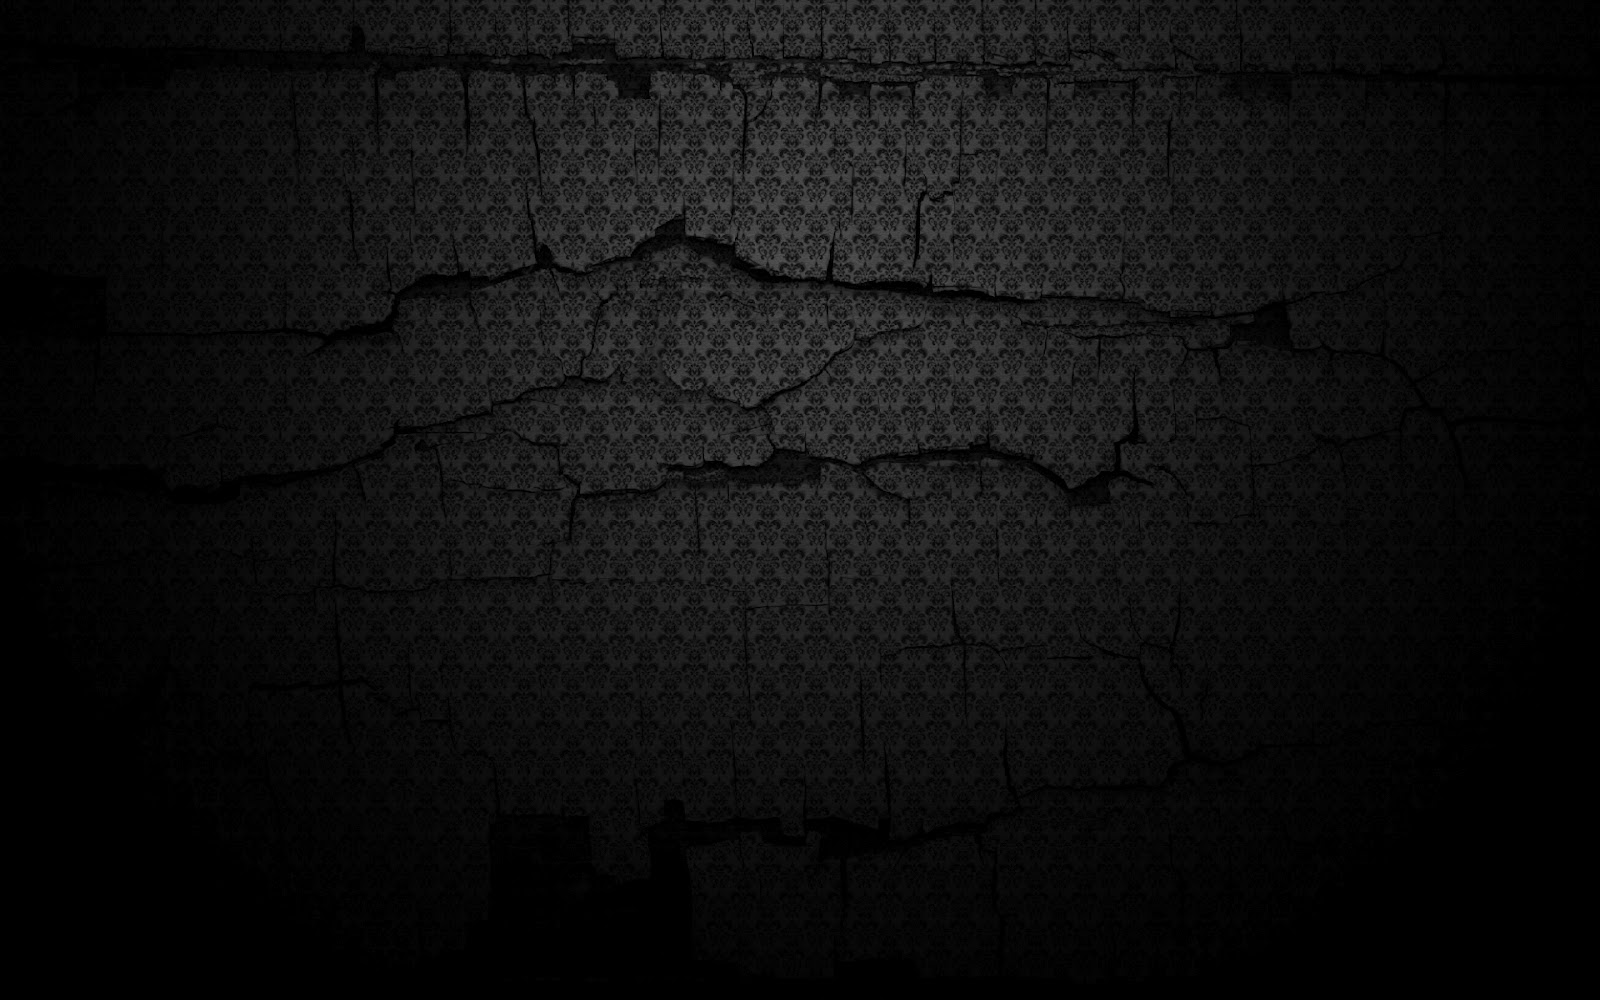 Dark Patterns HD Wallpapers| HD Wallpapers ,Backgrounds ,Photos ,Pictures, Image ,PC